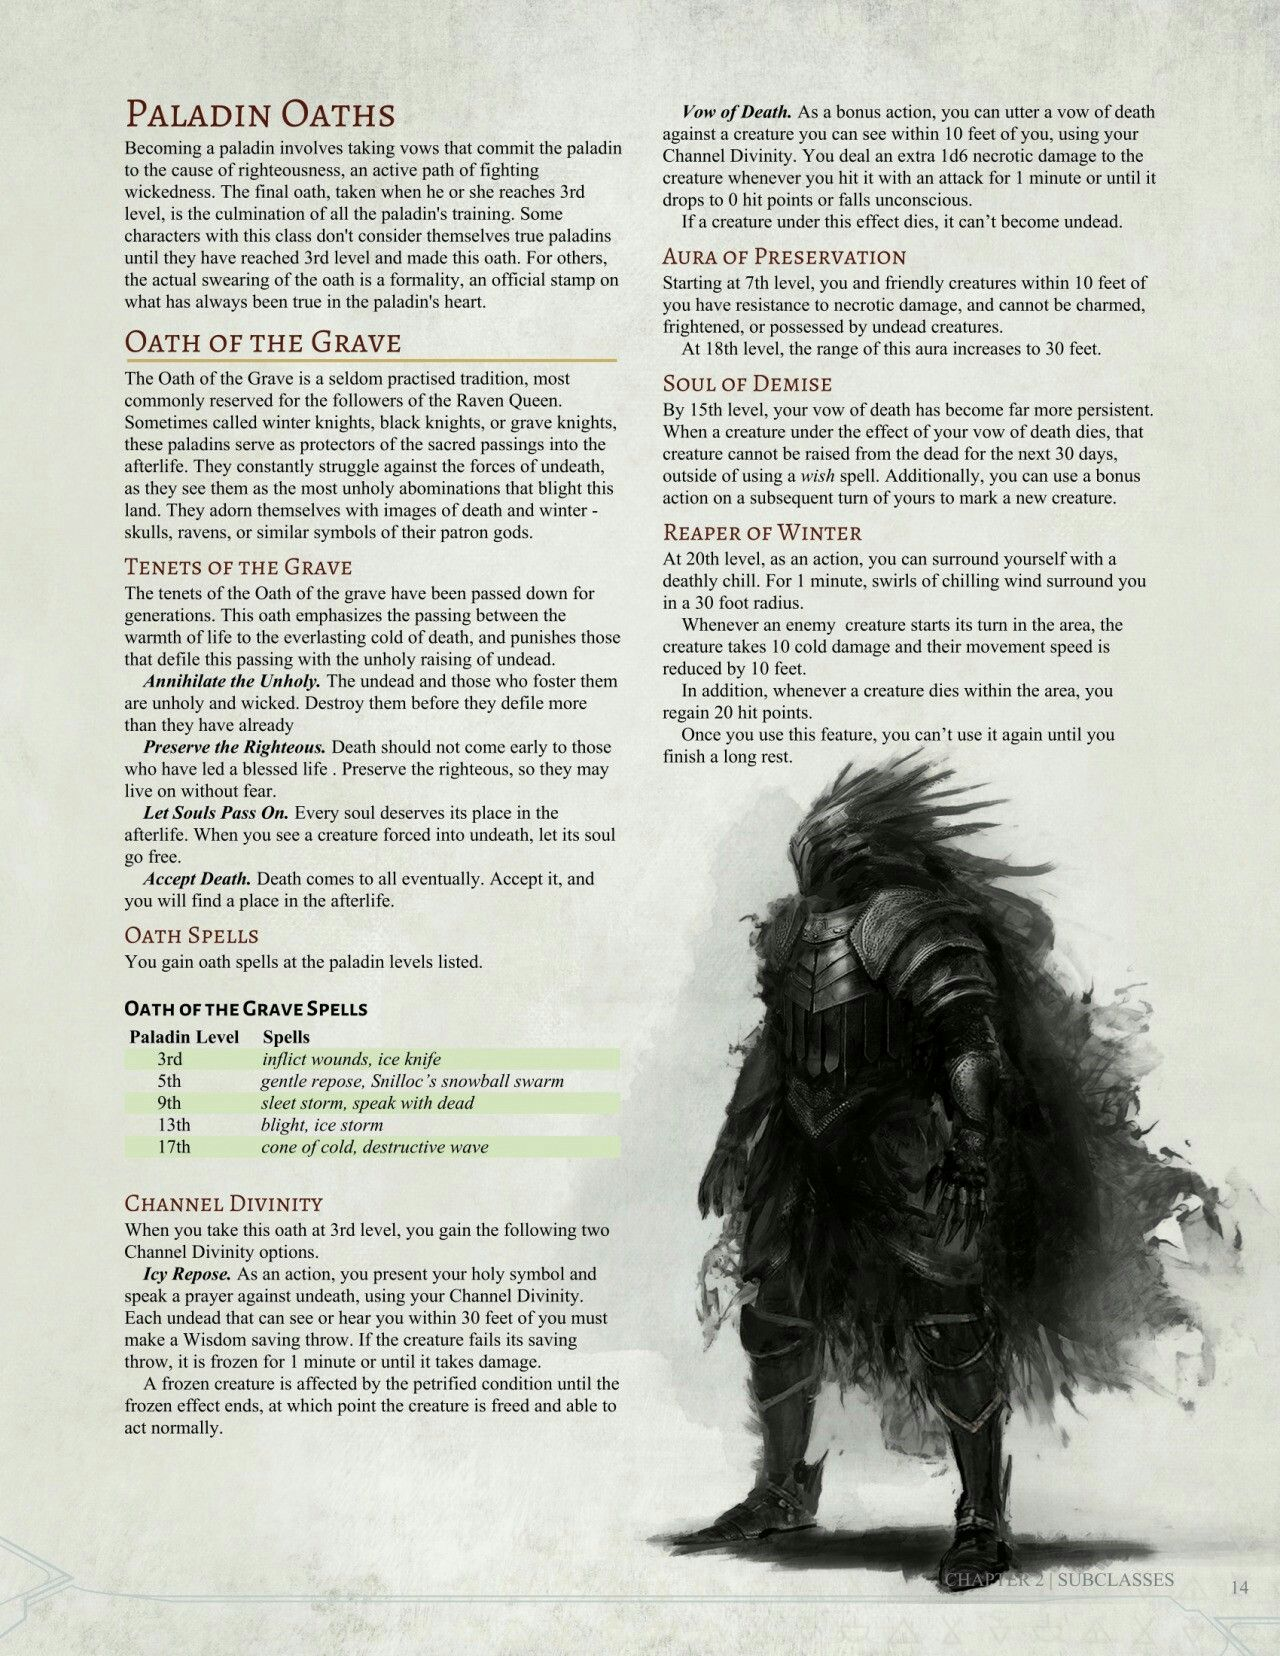 Pin by My Info on dnd 5e homebrew in 2019 | Dnd 5e homebrew